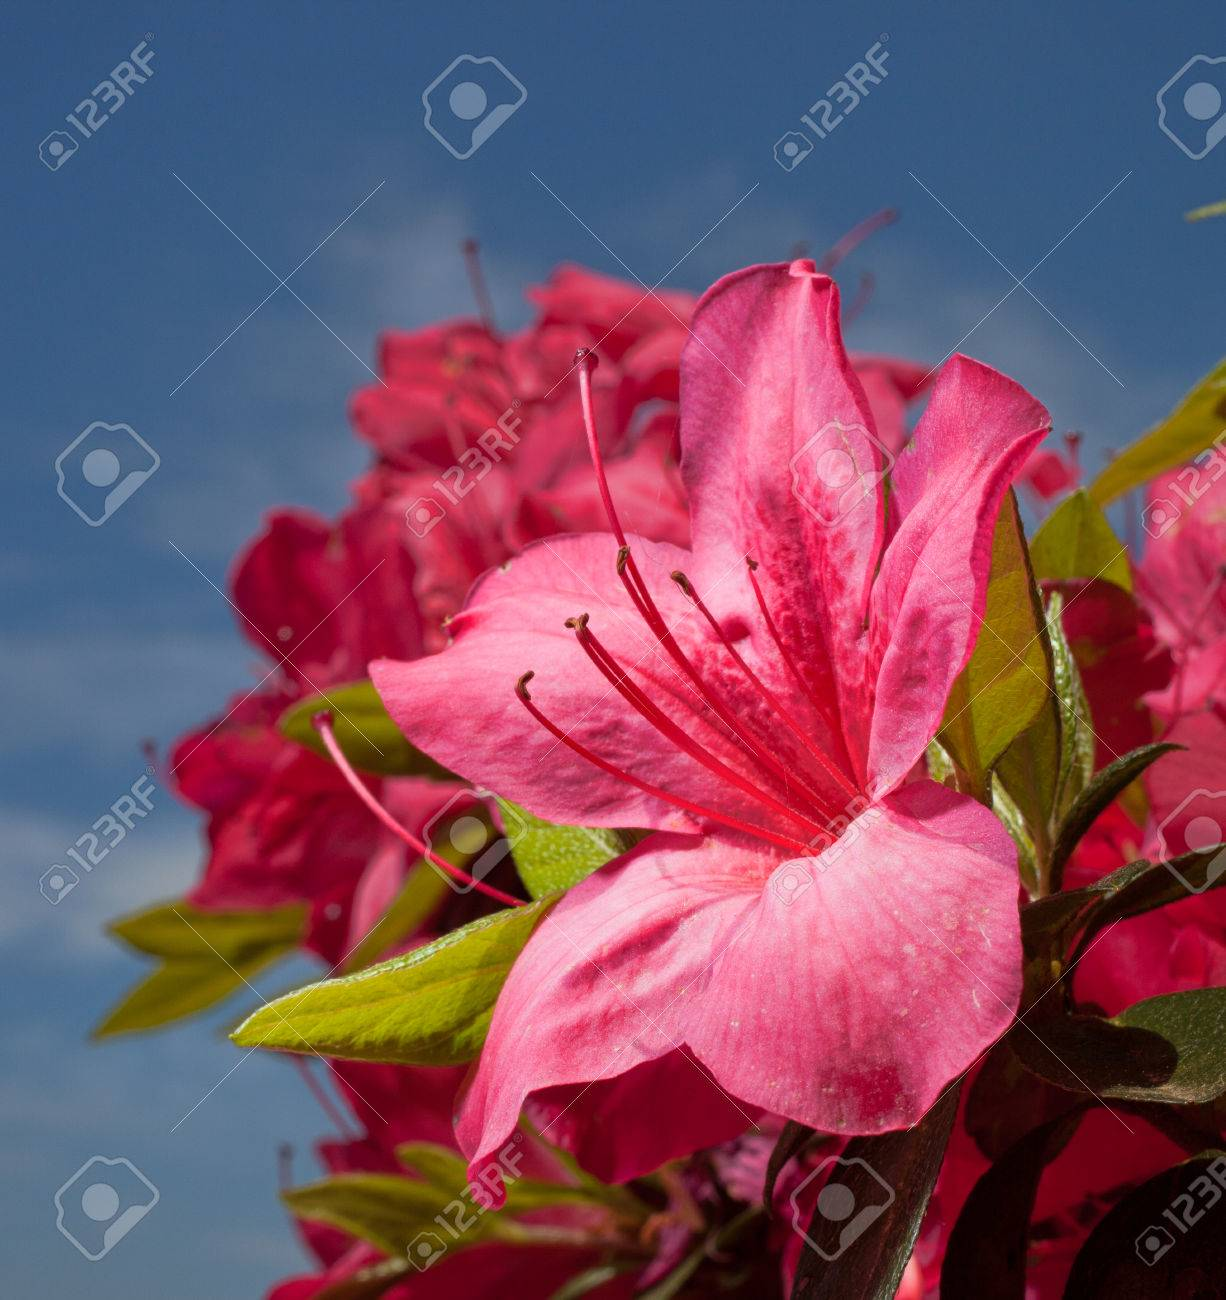 Bright Pink Flowers On An Azalea Bush With Clouds And Sky Stock